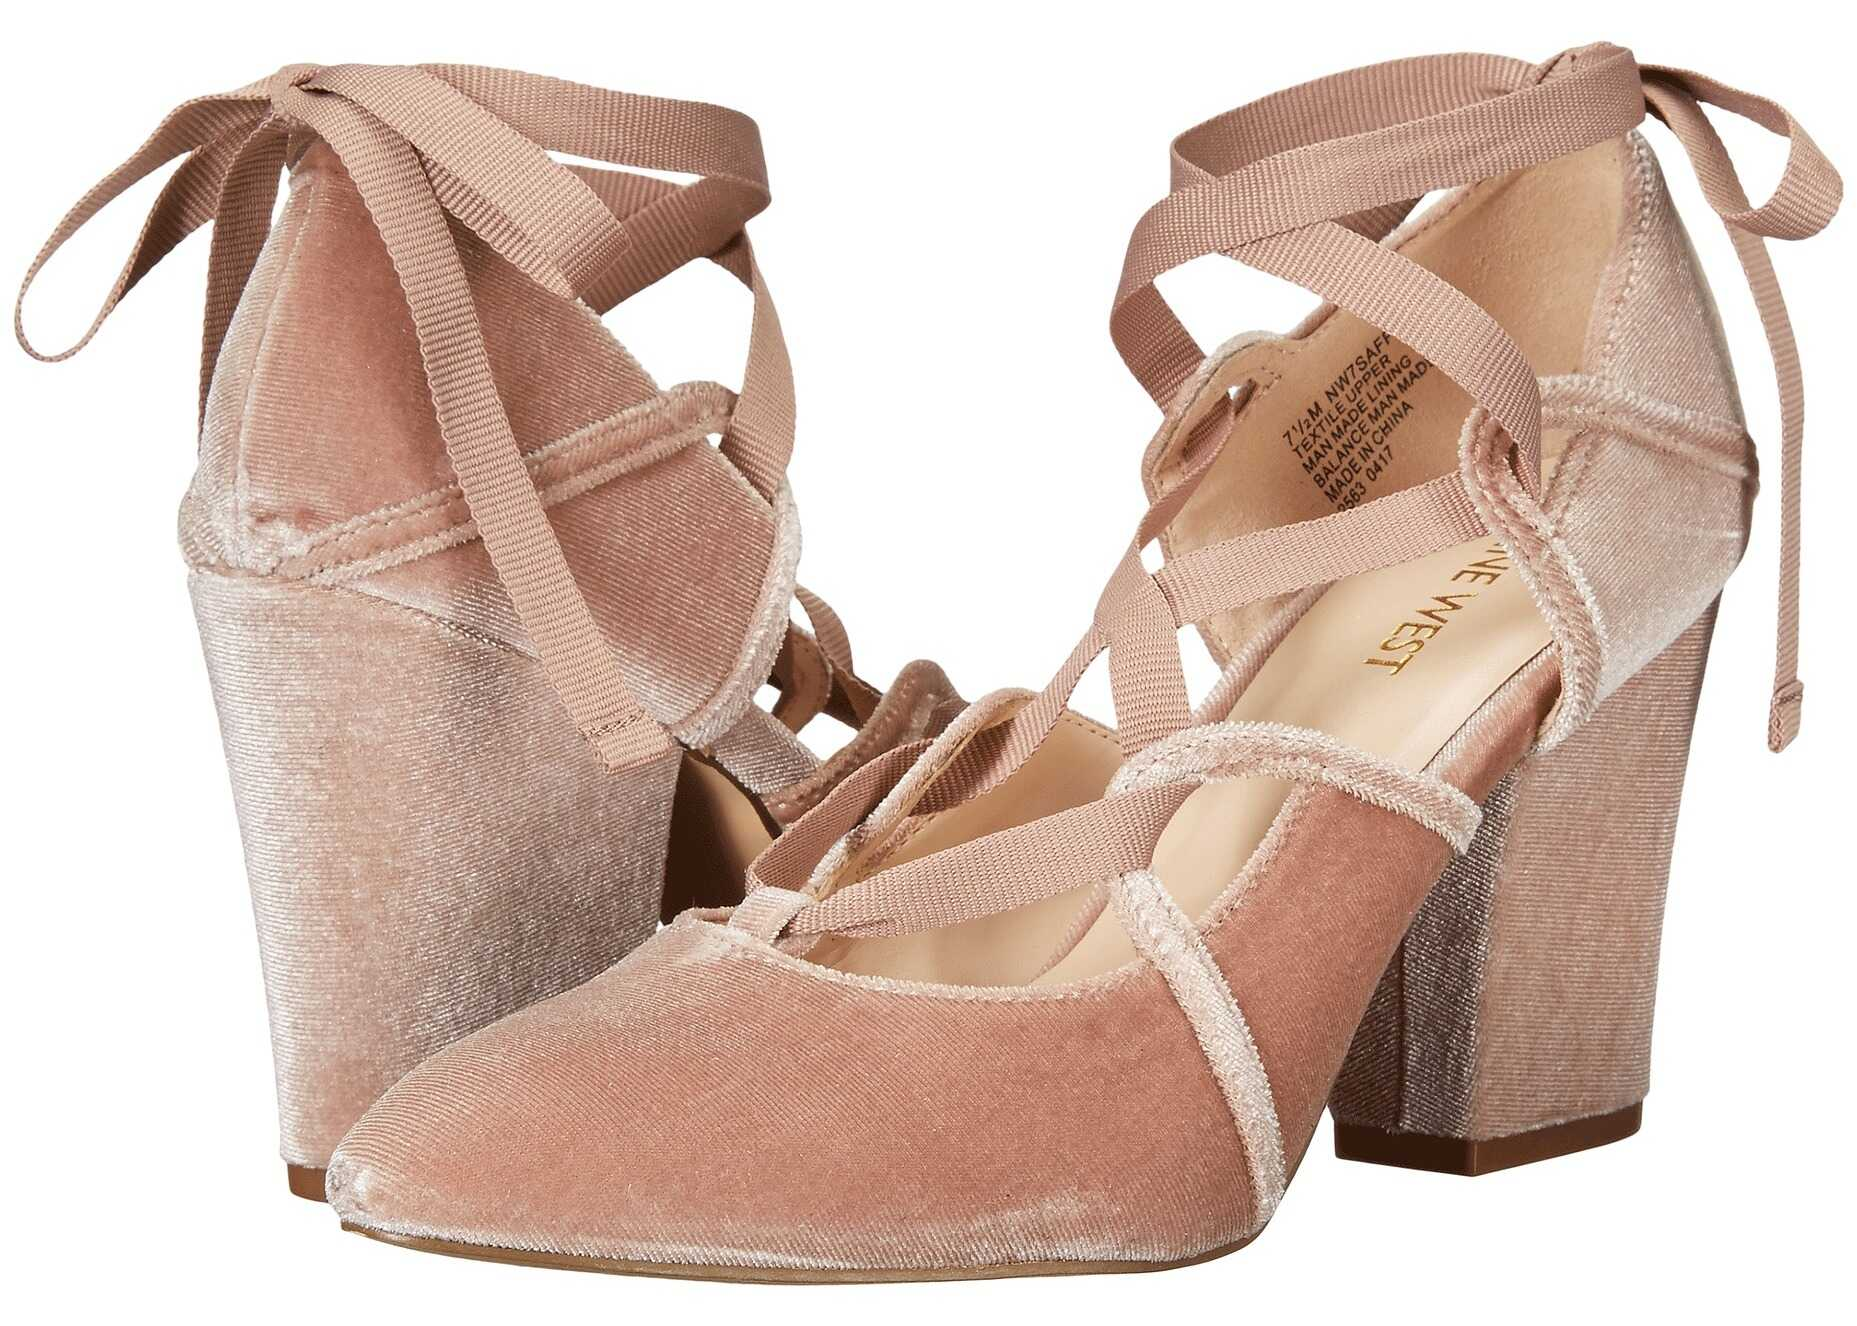 Nine West Safflower Ballet